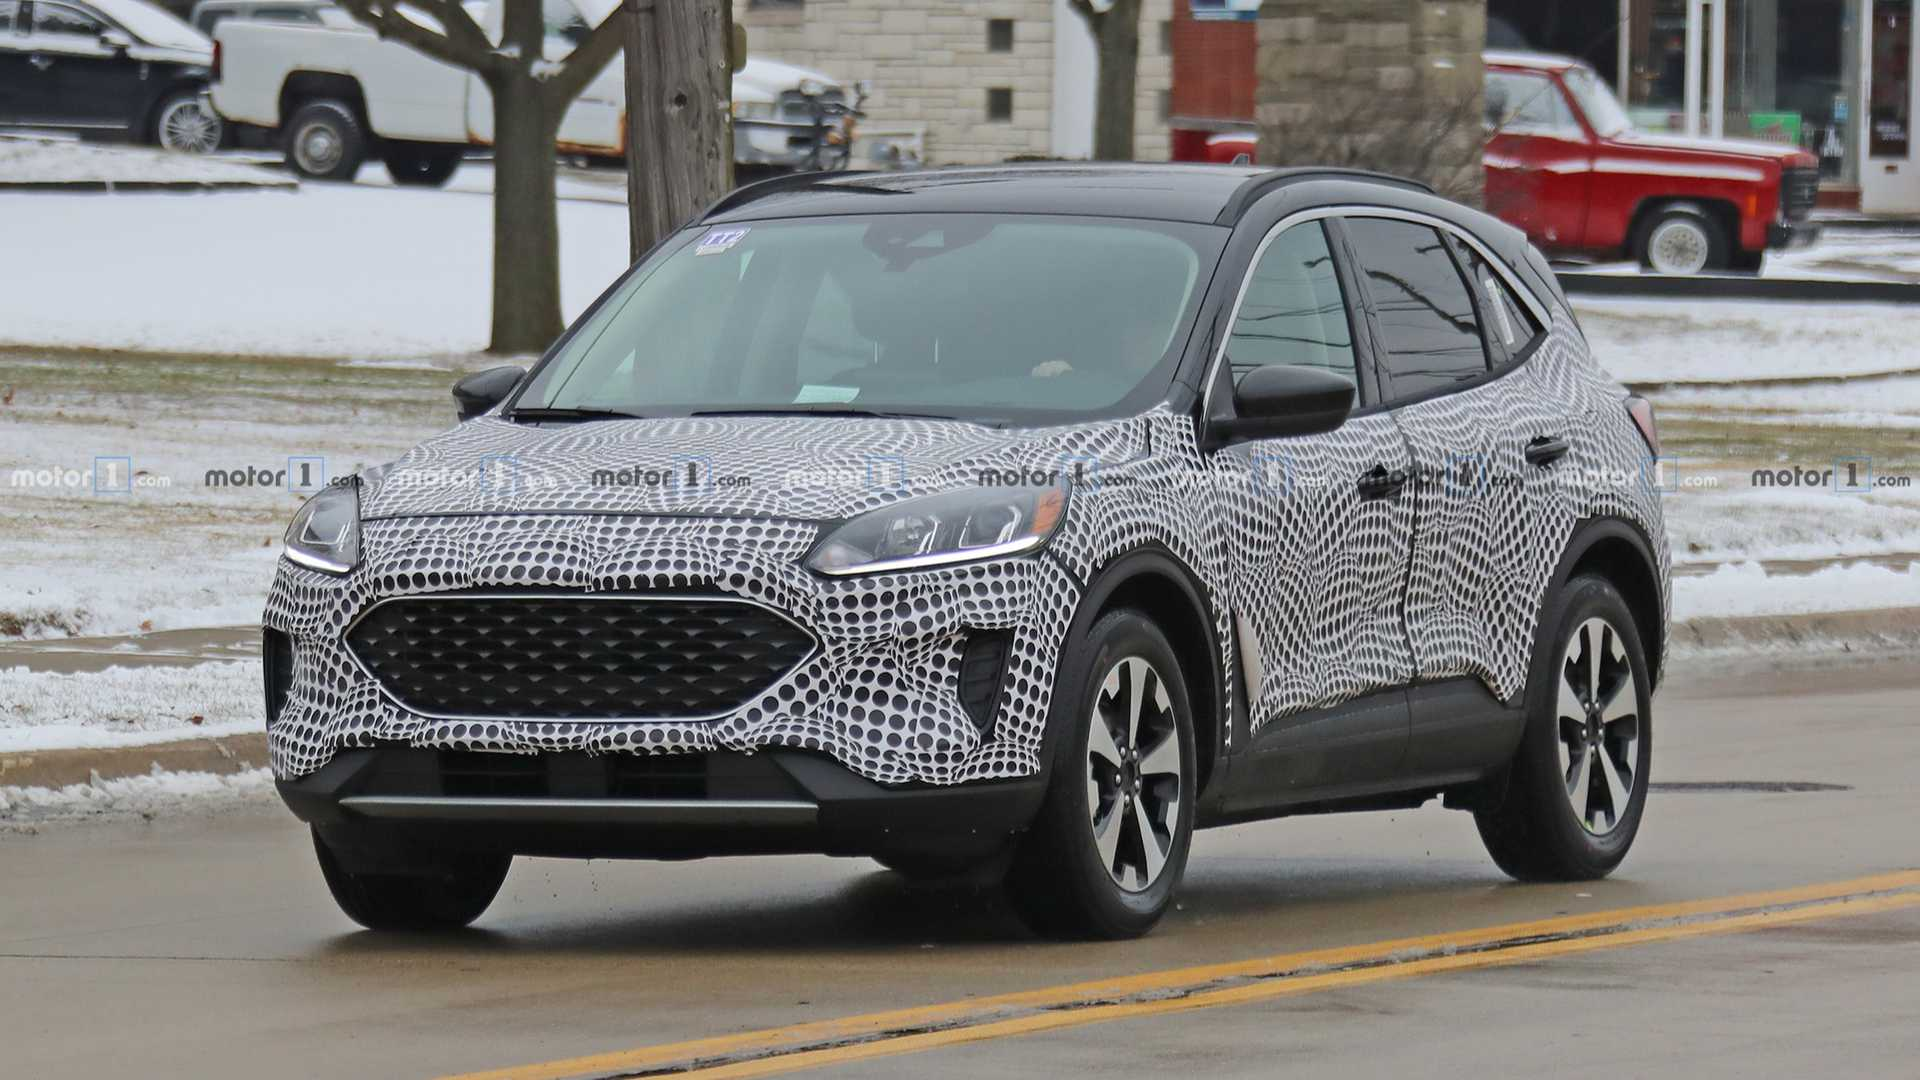 82 New Ford Hybrid Escape 2020 Price